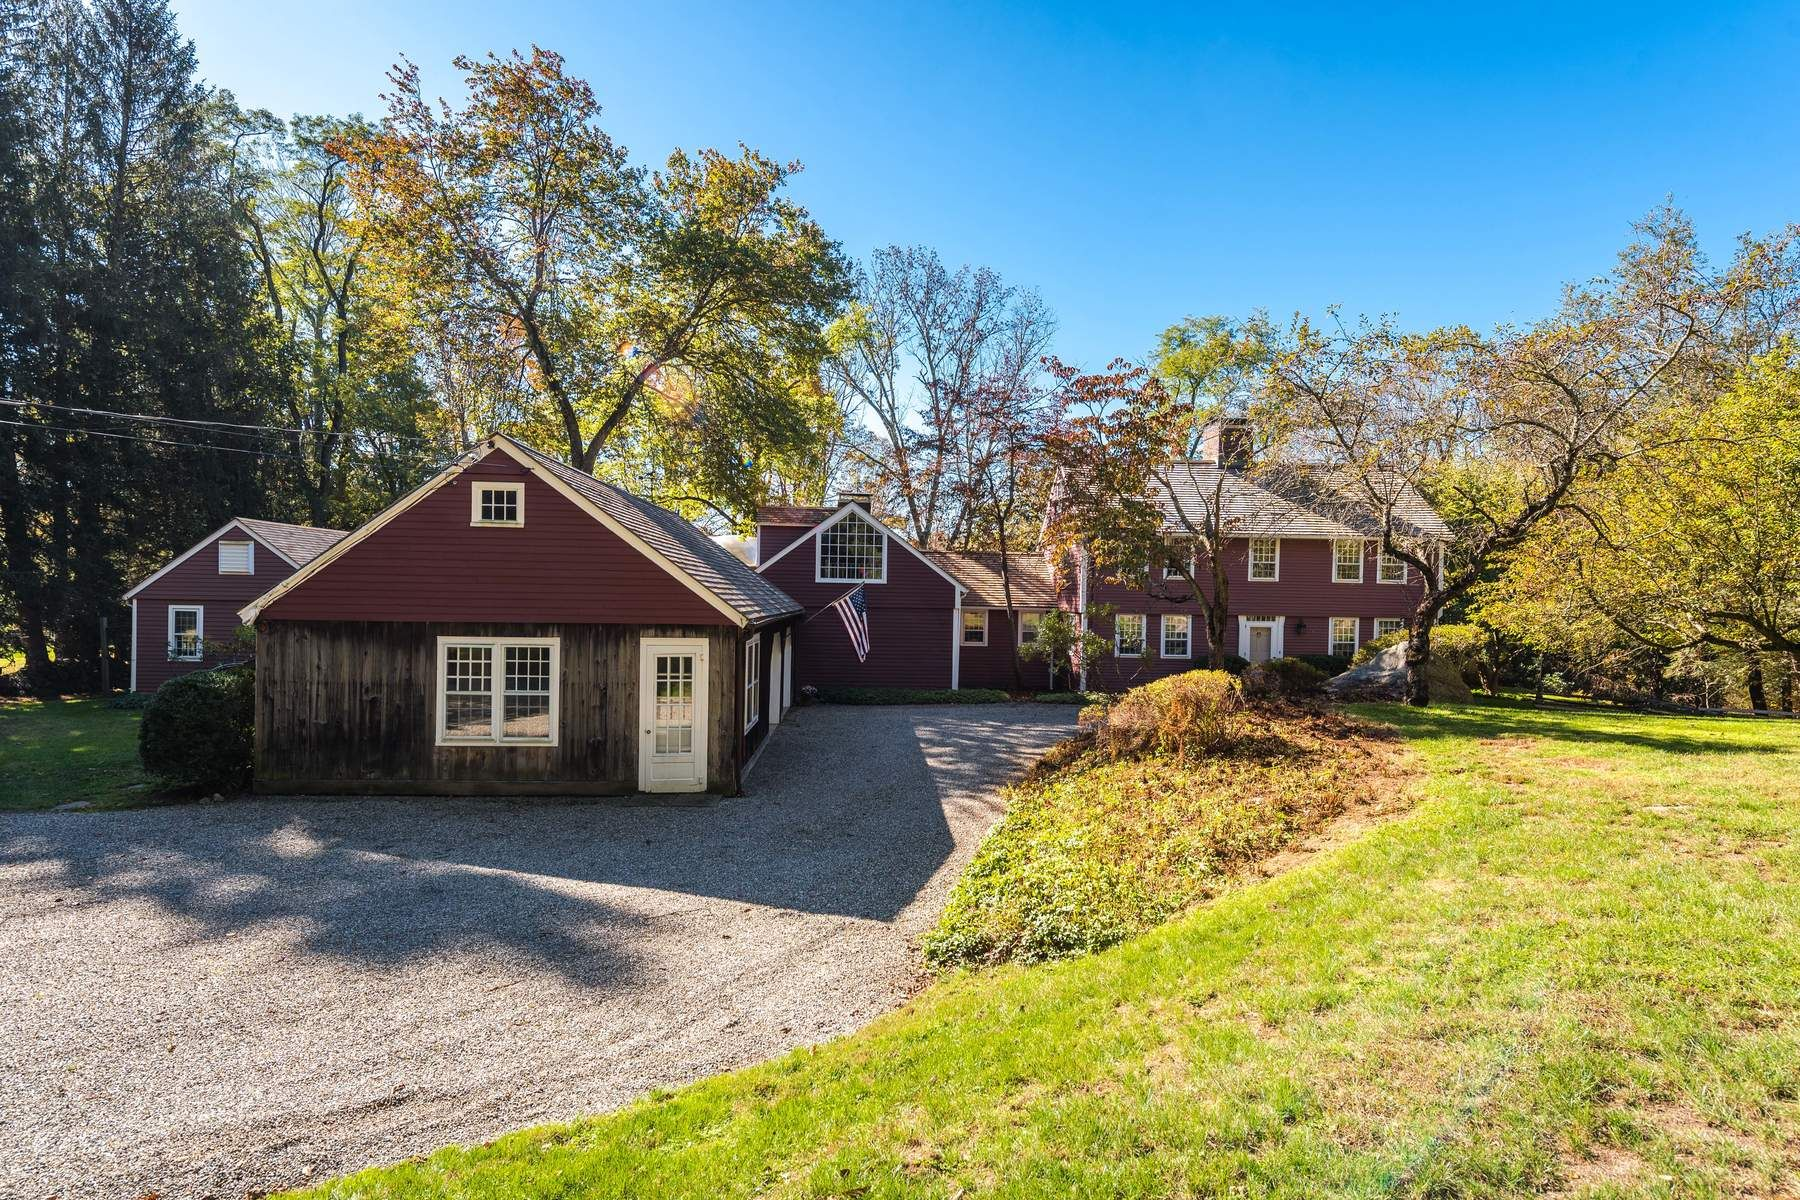 Single Family Home for Sale at History Lives Here 45 Barn Hill Road, Backcountry, Greenwich, Connecticut, 06831 United States